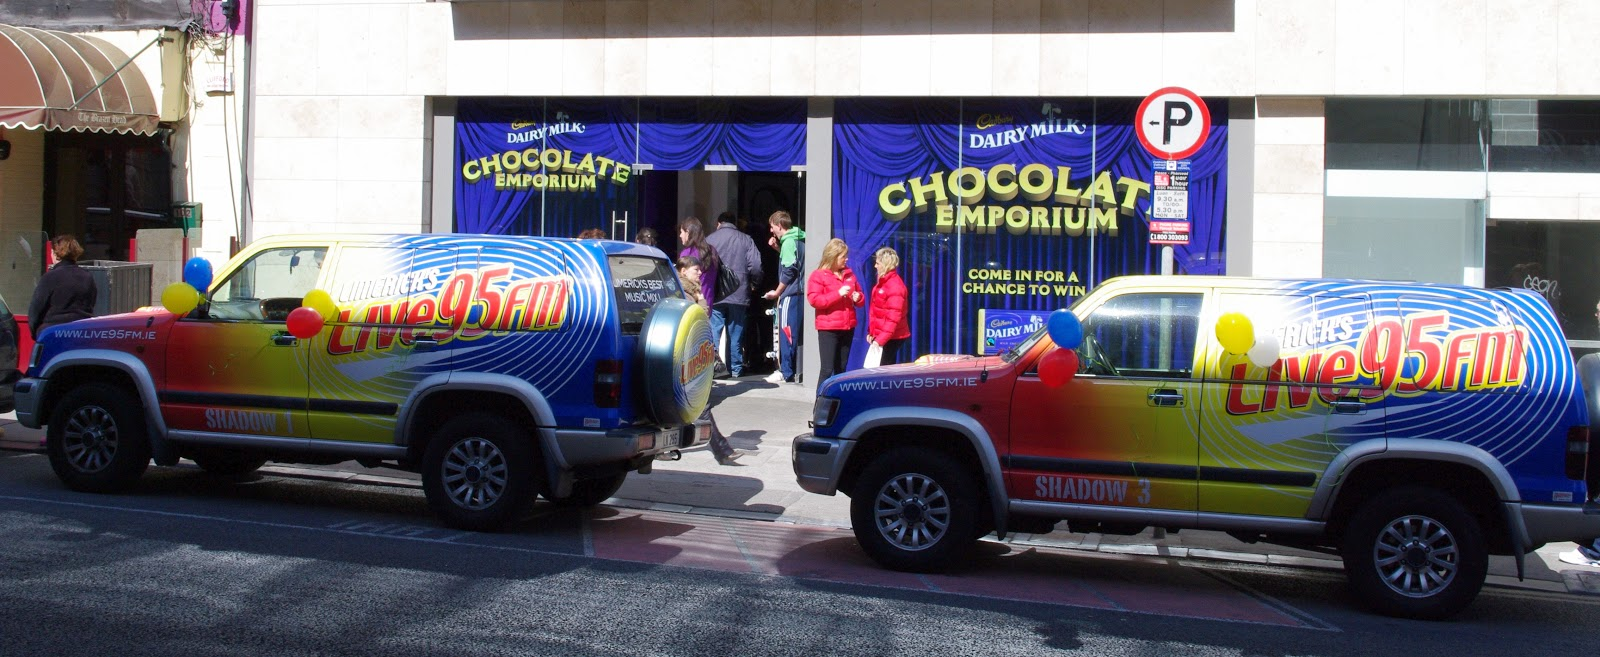 Cadbury Chocolate Emporium Promotion